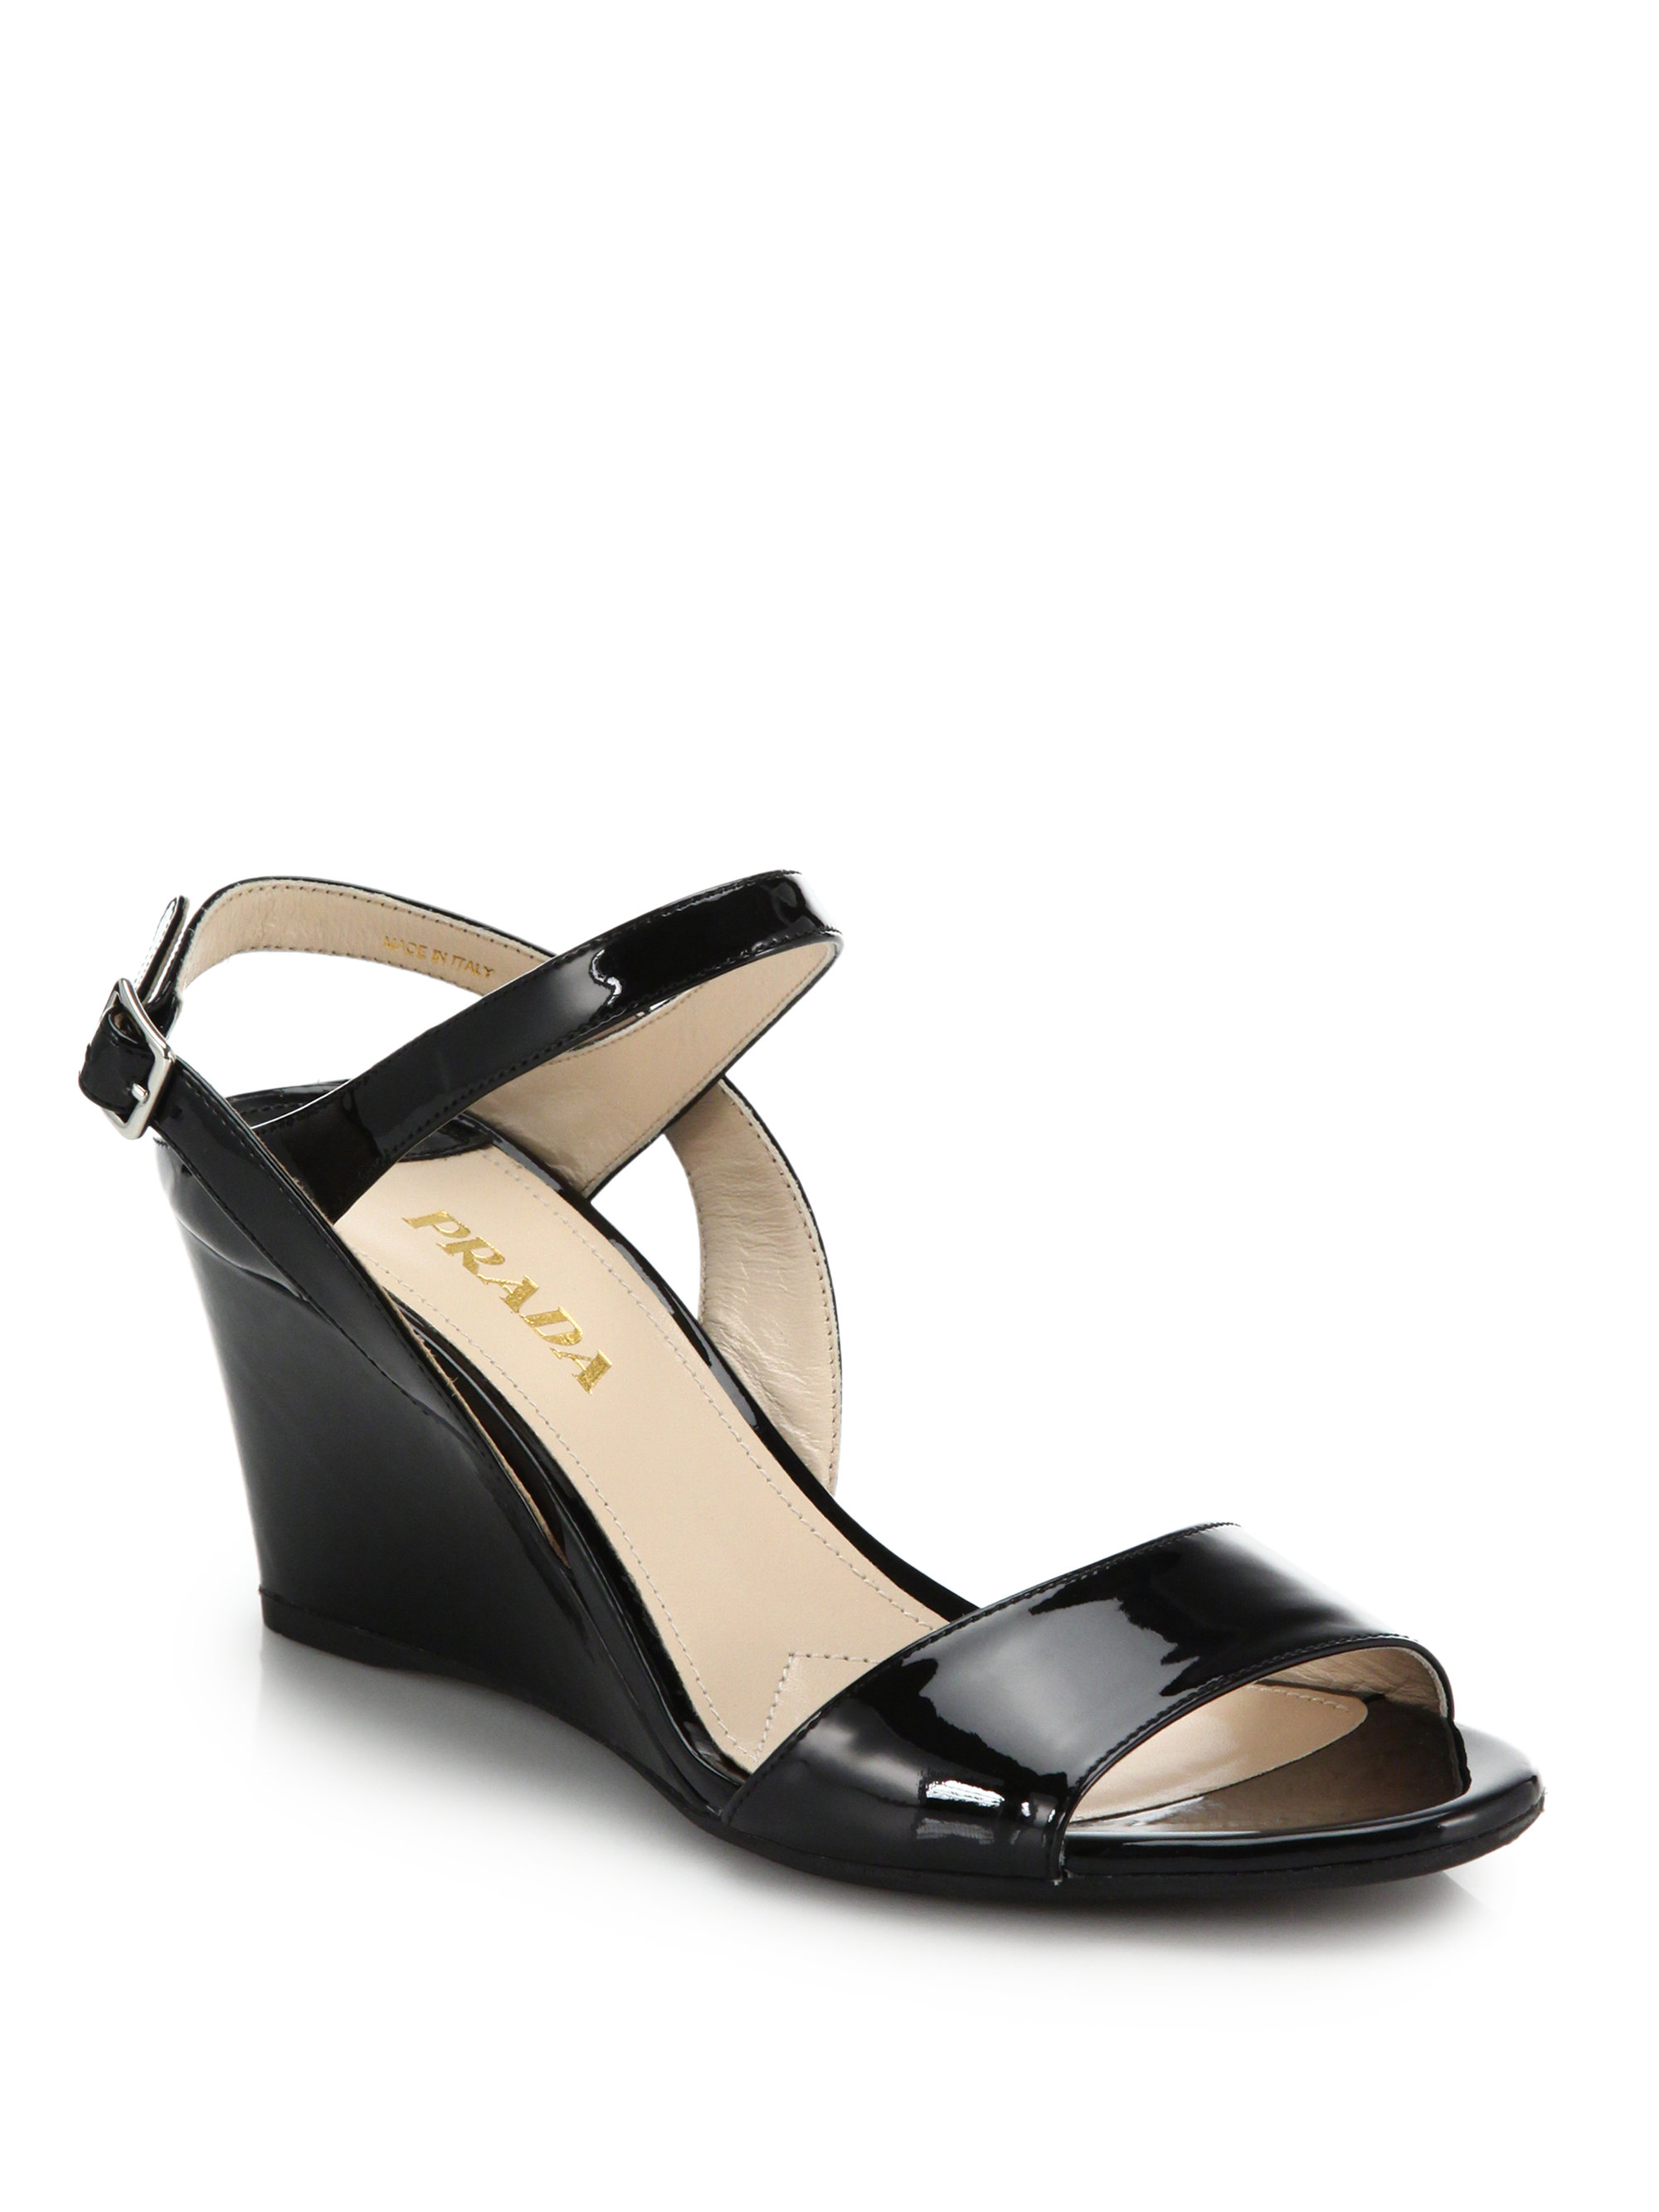 prada patent leather wedge sandals in black lyst